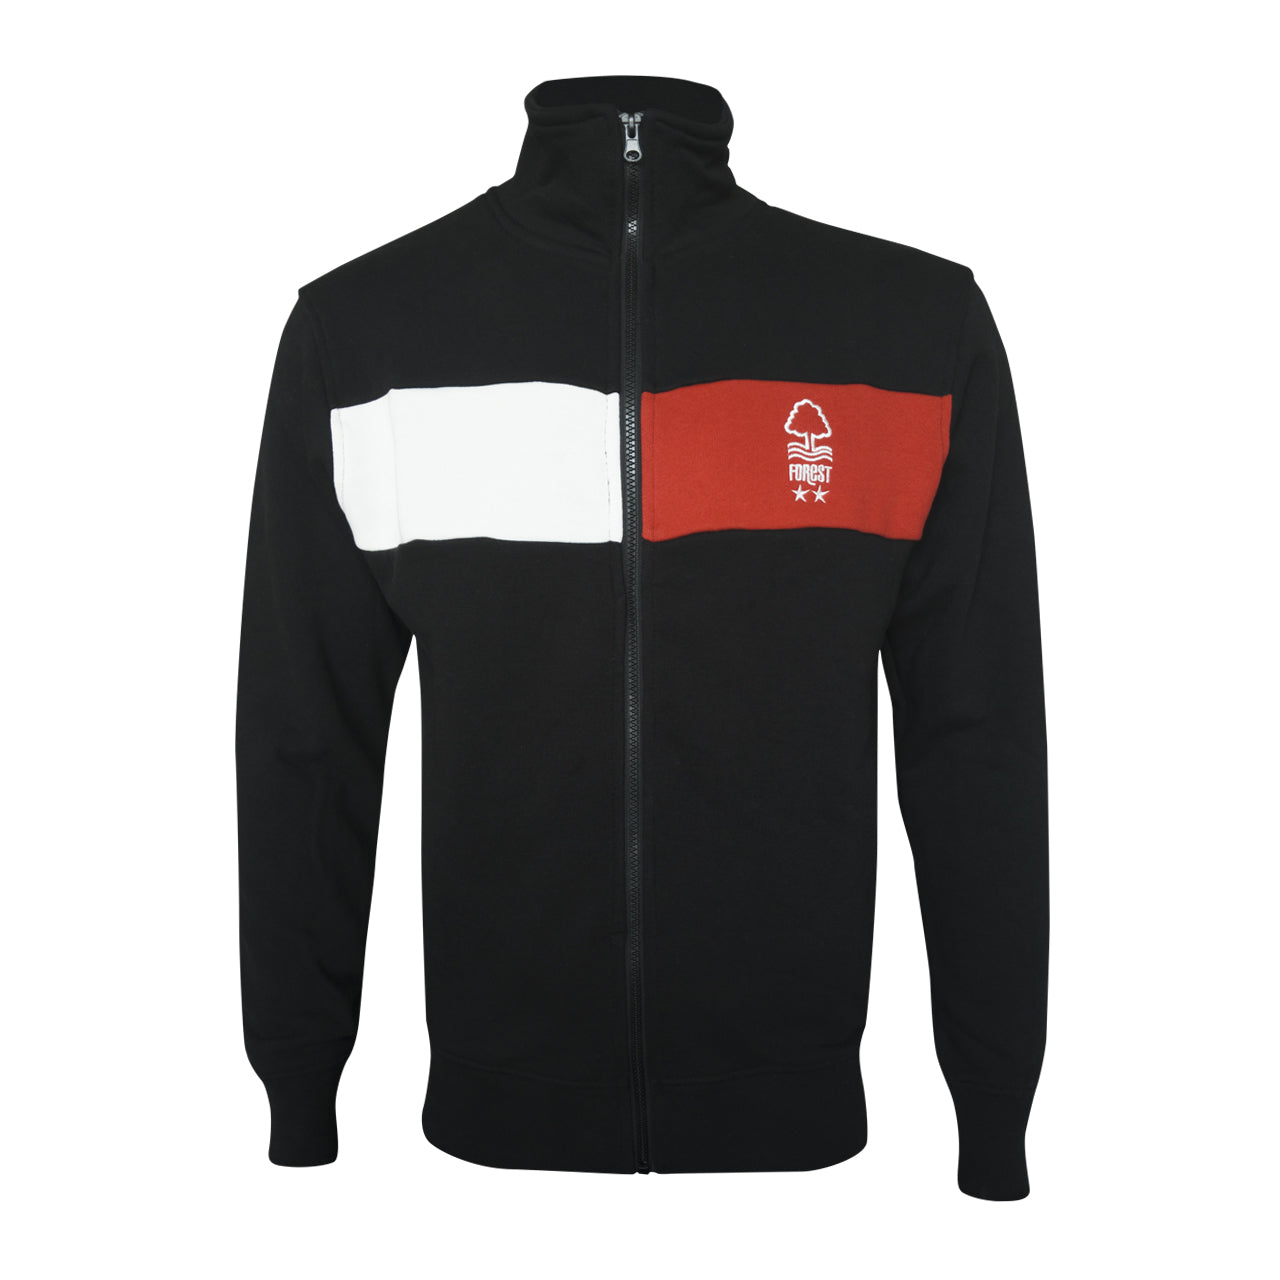 NFFC Mens 2 Tone Stripe Track Jacket